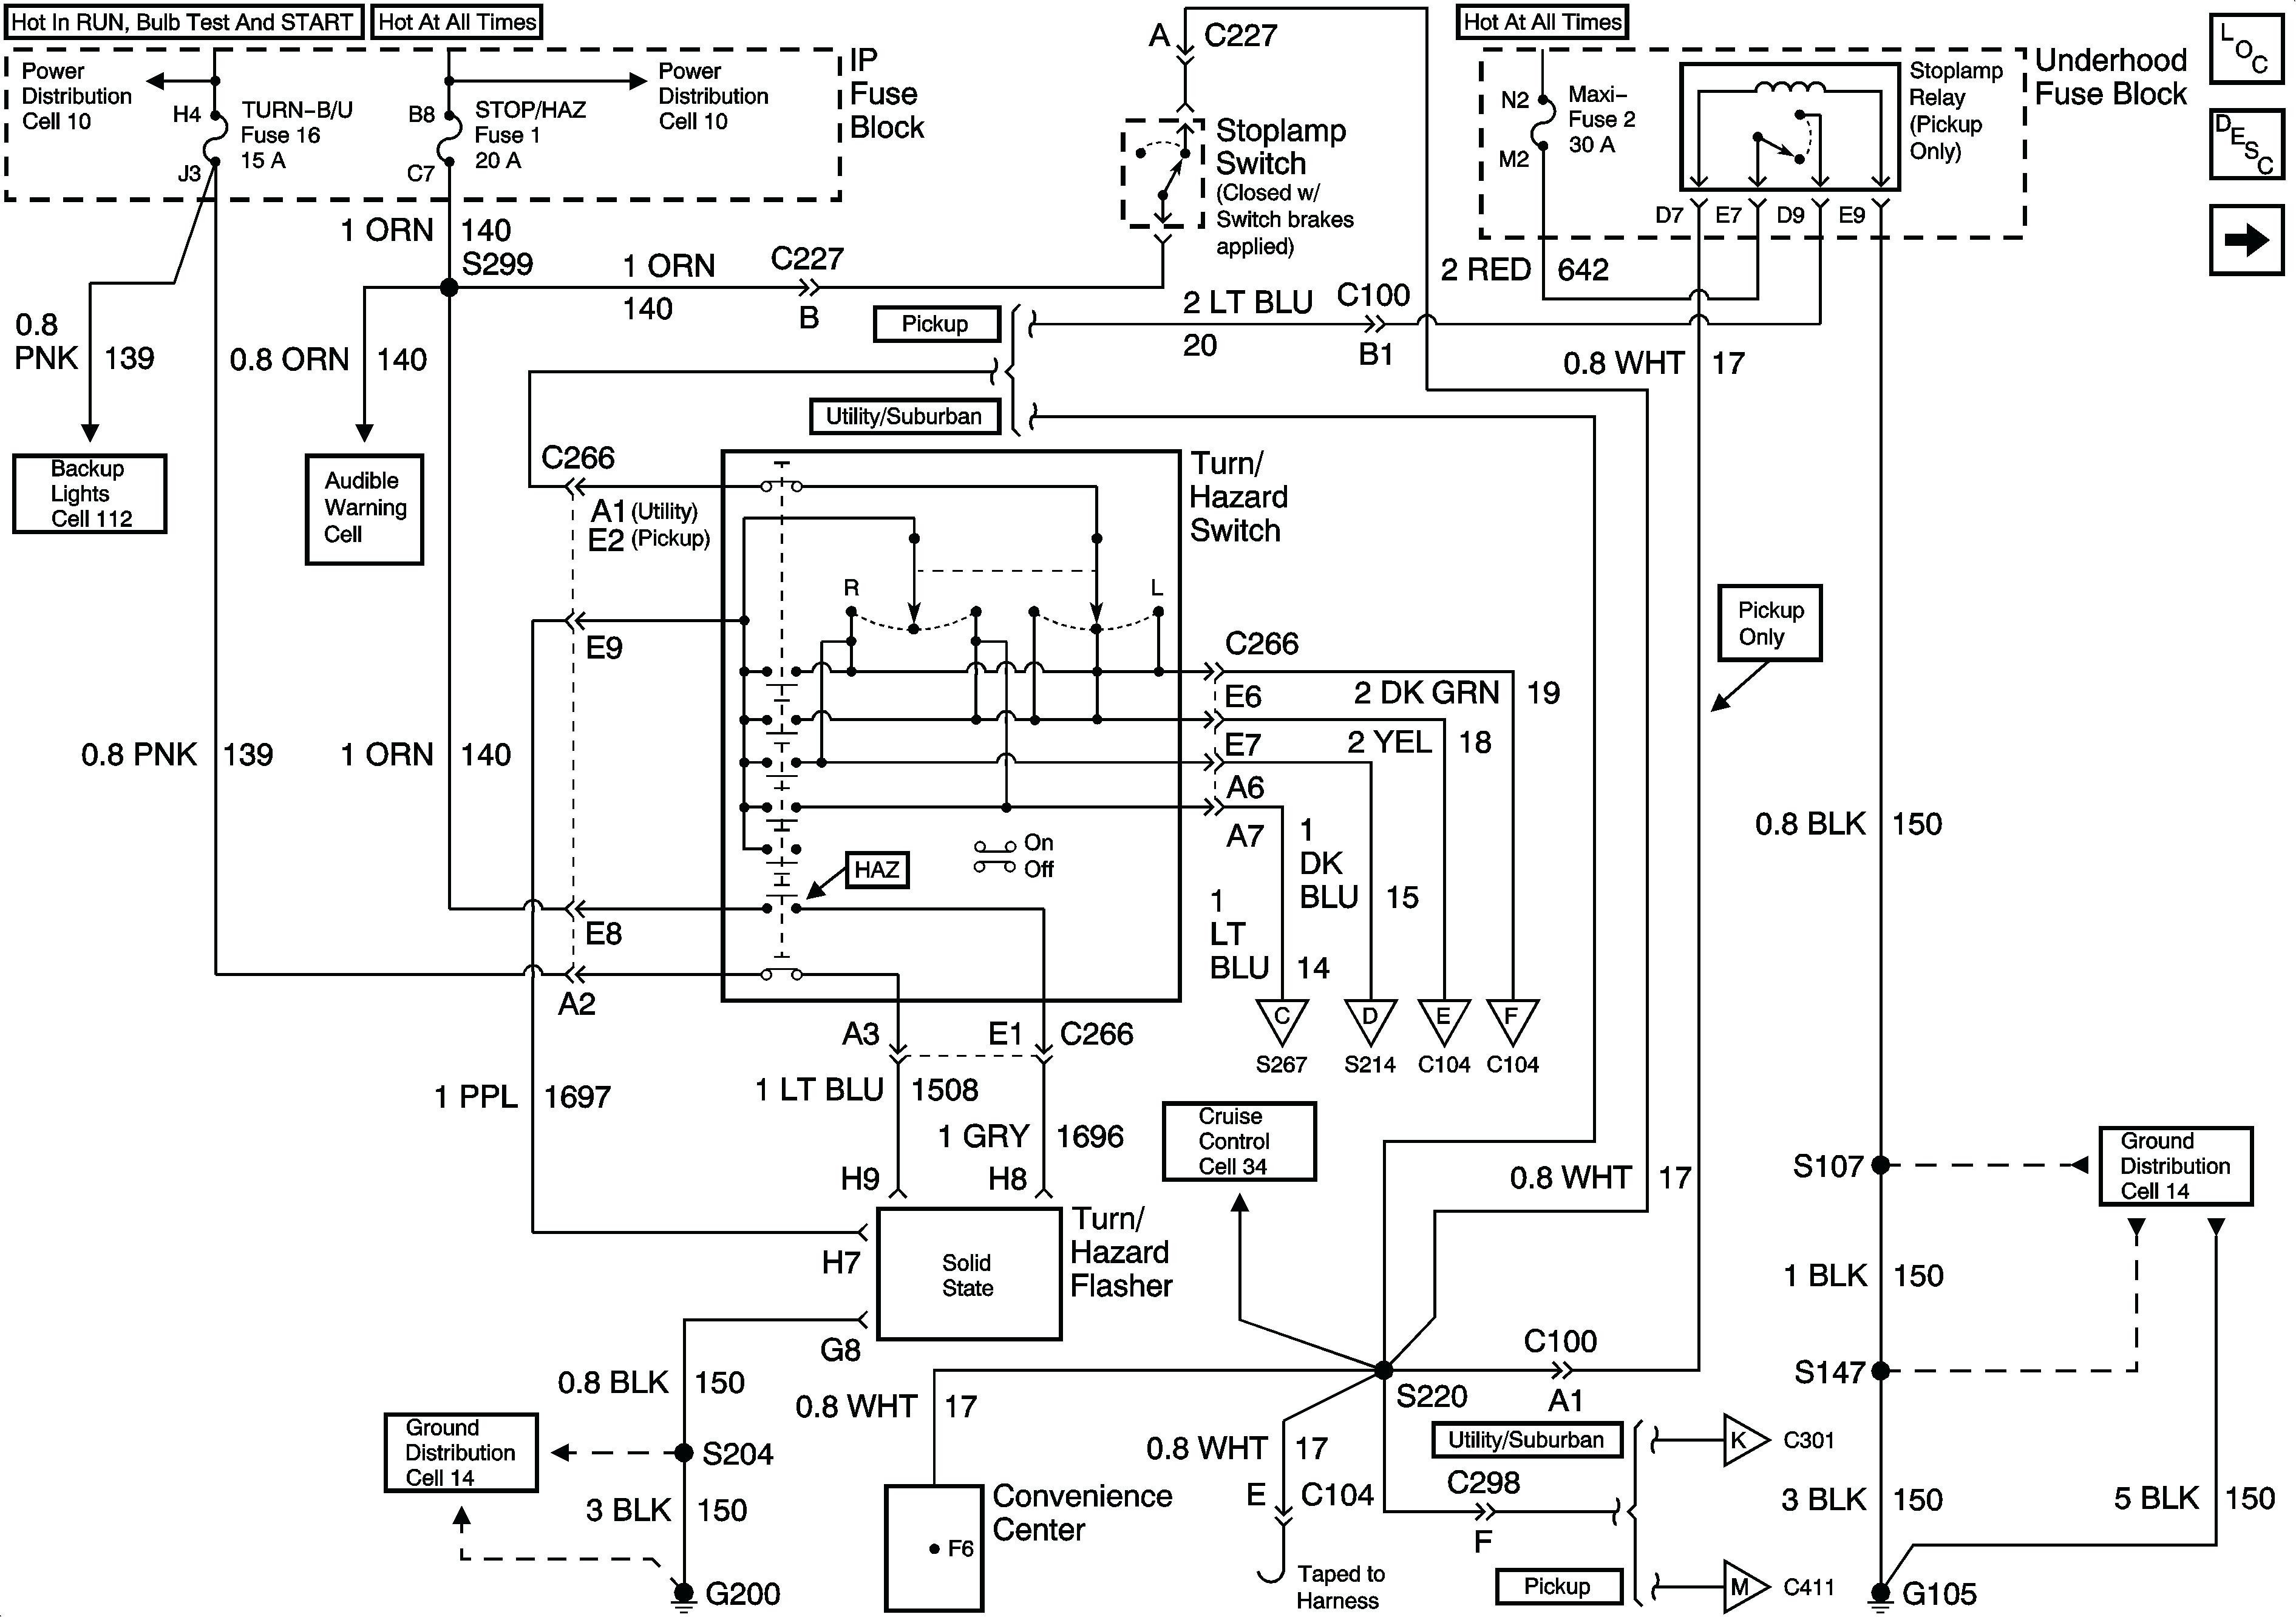 Wiring Diagram For 1999 Pontiac Bonneville Electrical Diagrams 99 Fuse Box 2002 Engine Grand Am Chevrolet Blazer